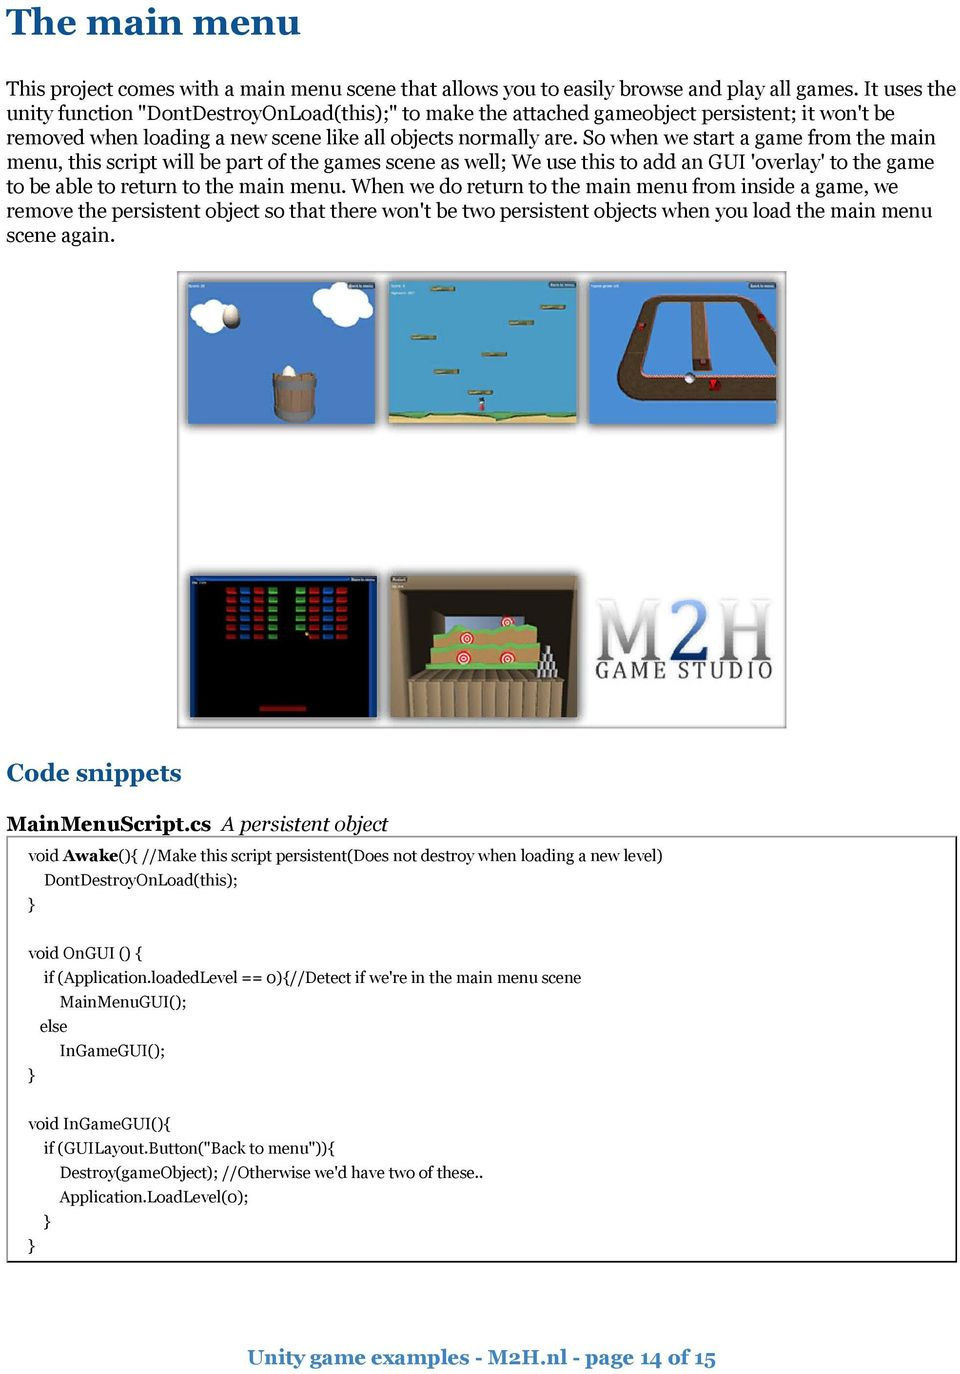 Unity game examples By Mike Hergaarden from M2H ( - PDF